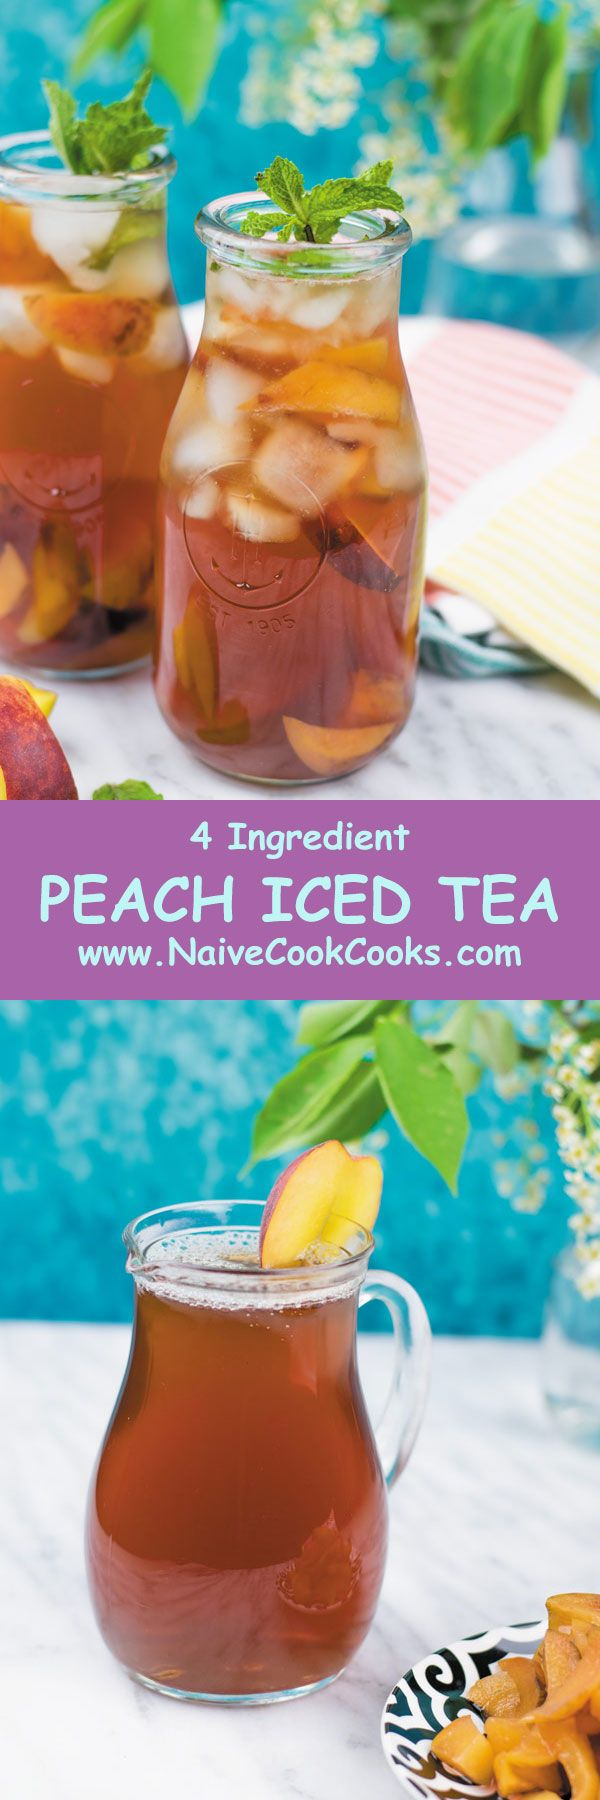 FRESH PEACH ICED TEA - perfect summer drink made using fresh peaches, no funny stuff and this lasts for few days in fridge!